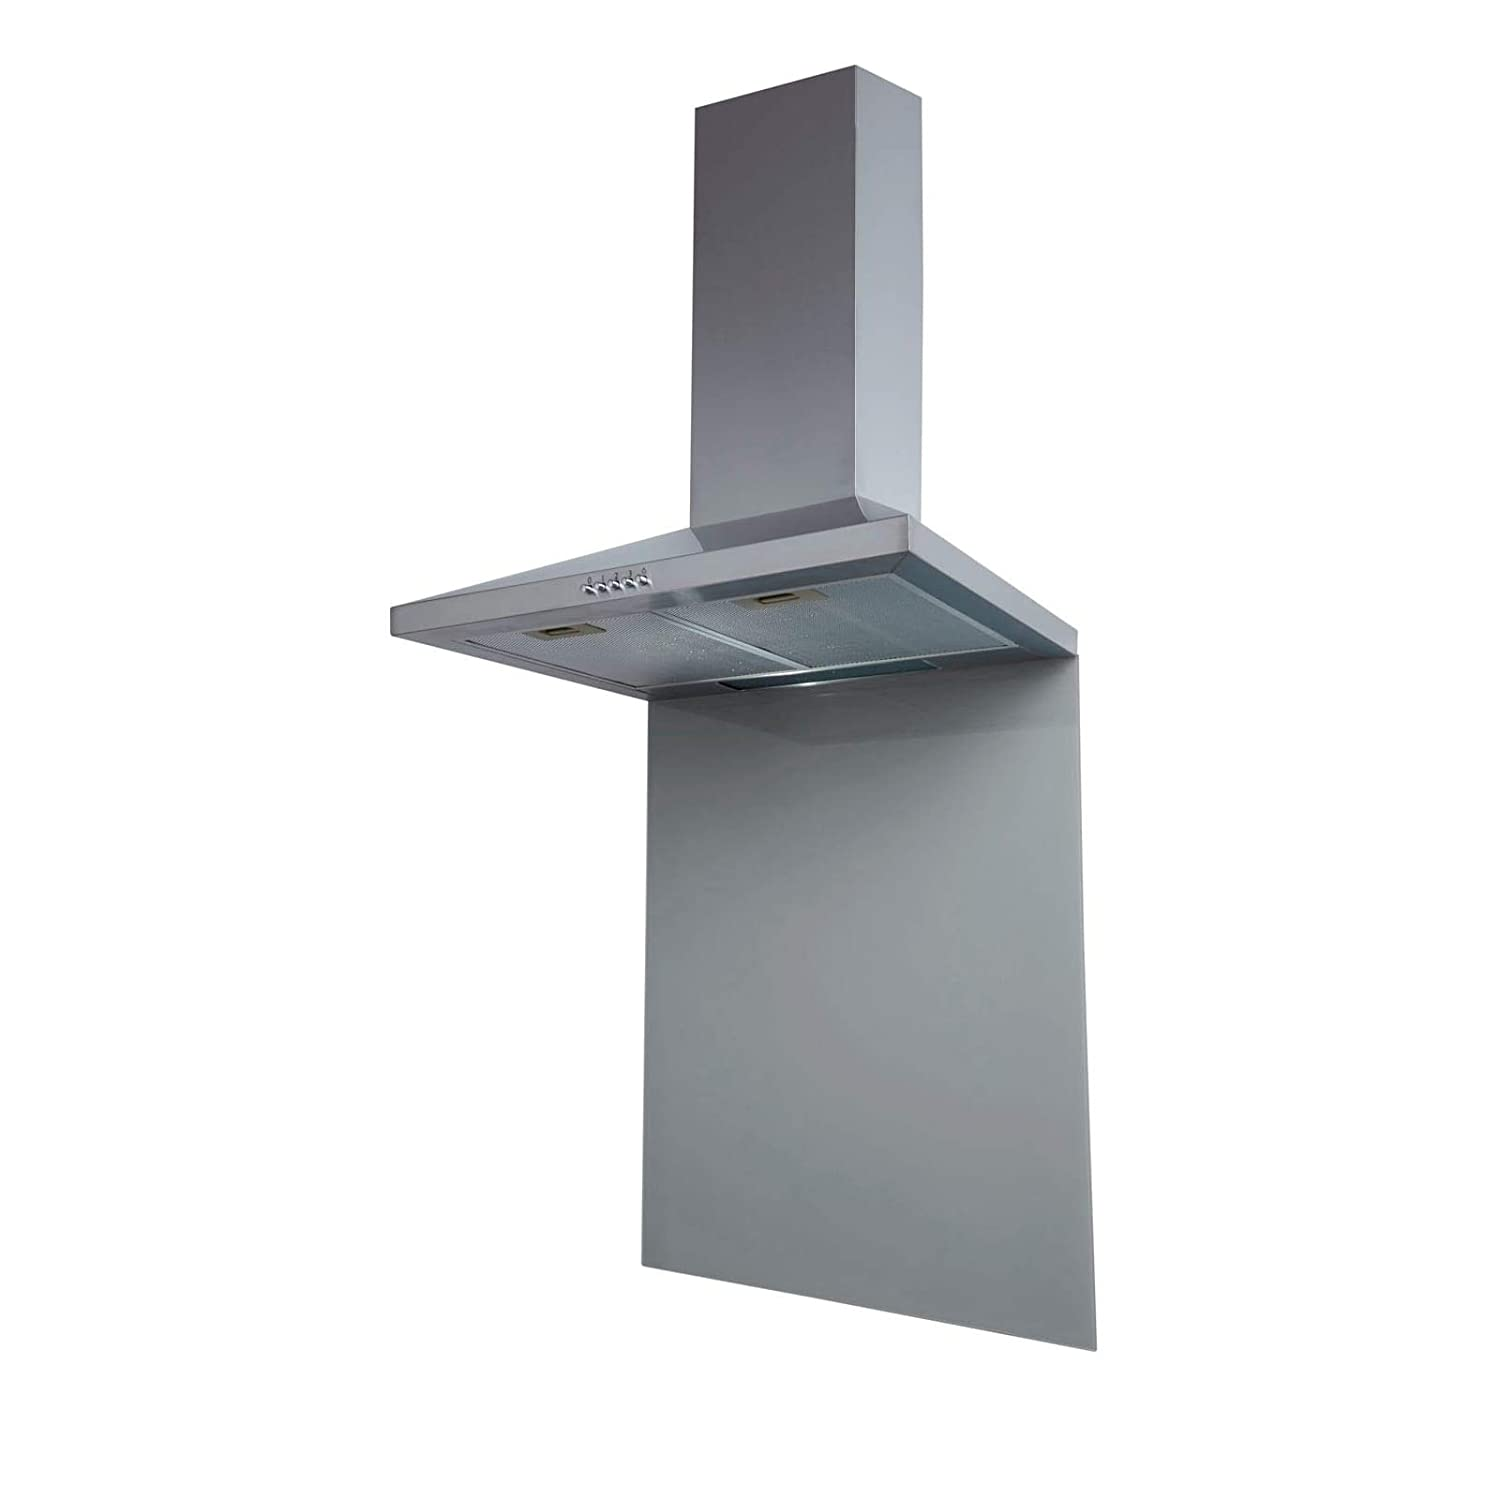 SIA SP70GY 70cm x 75cm Grey Toughened Glass Kitchen Splashback